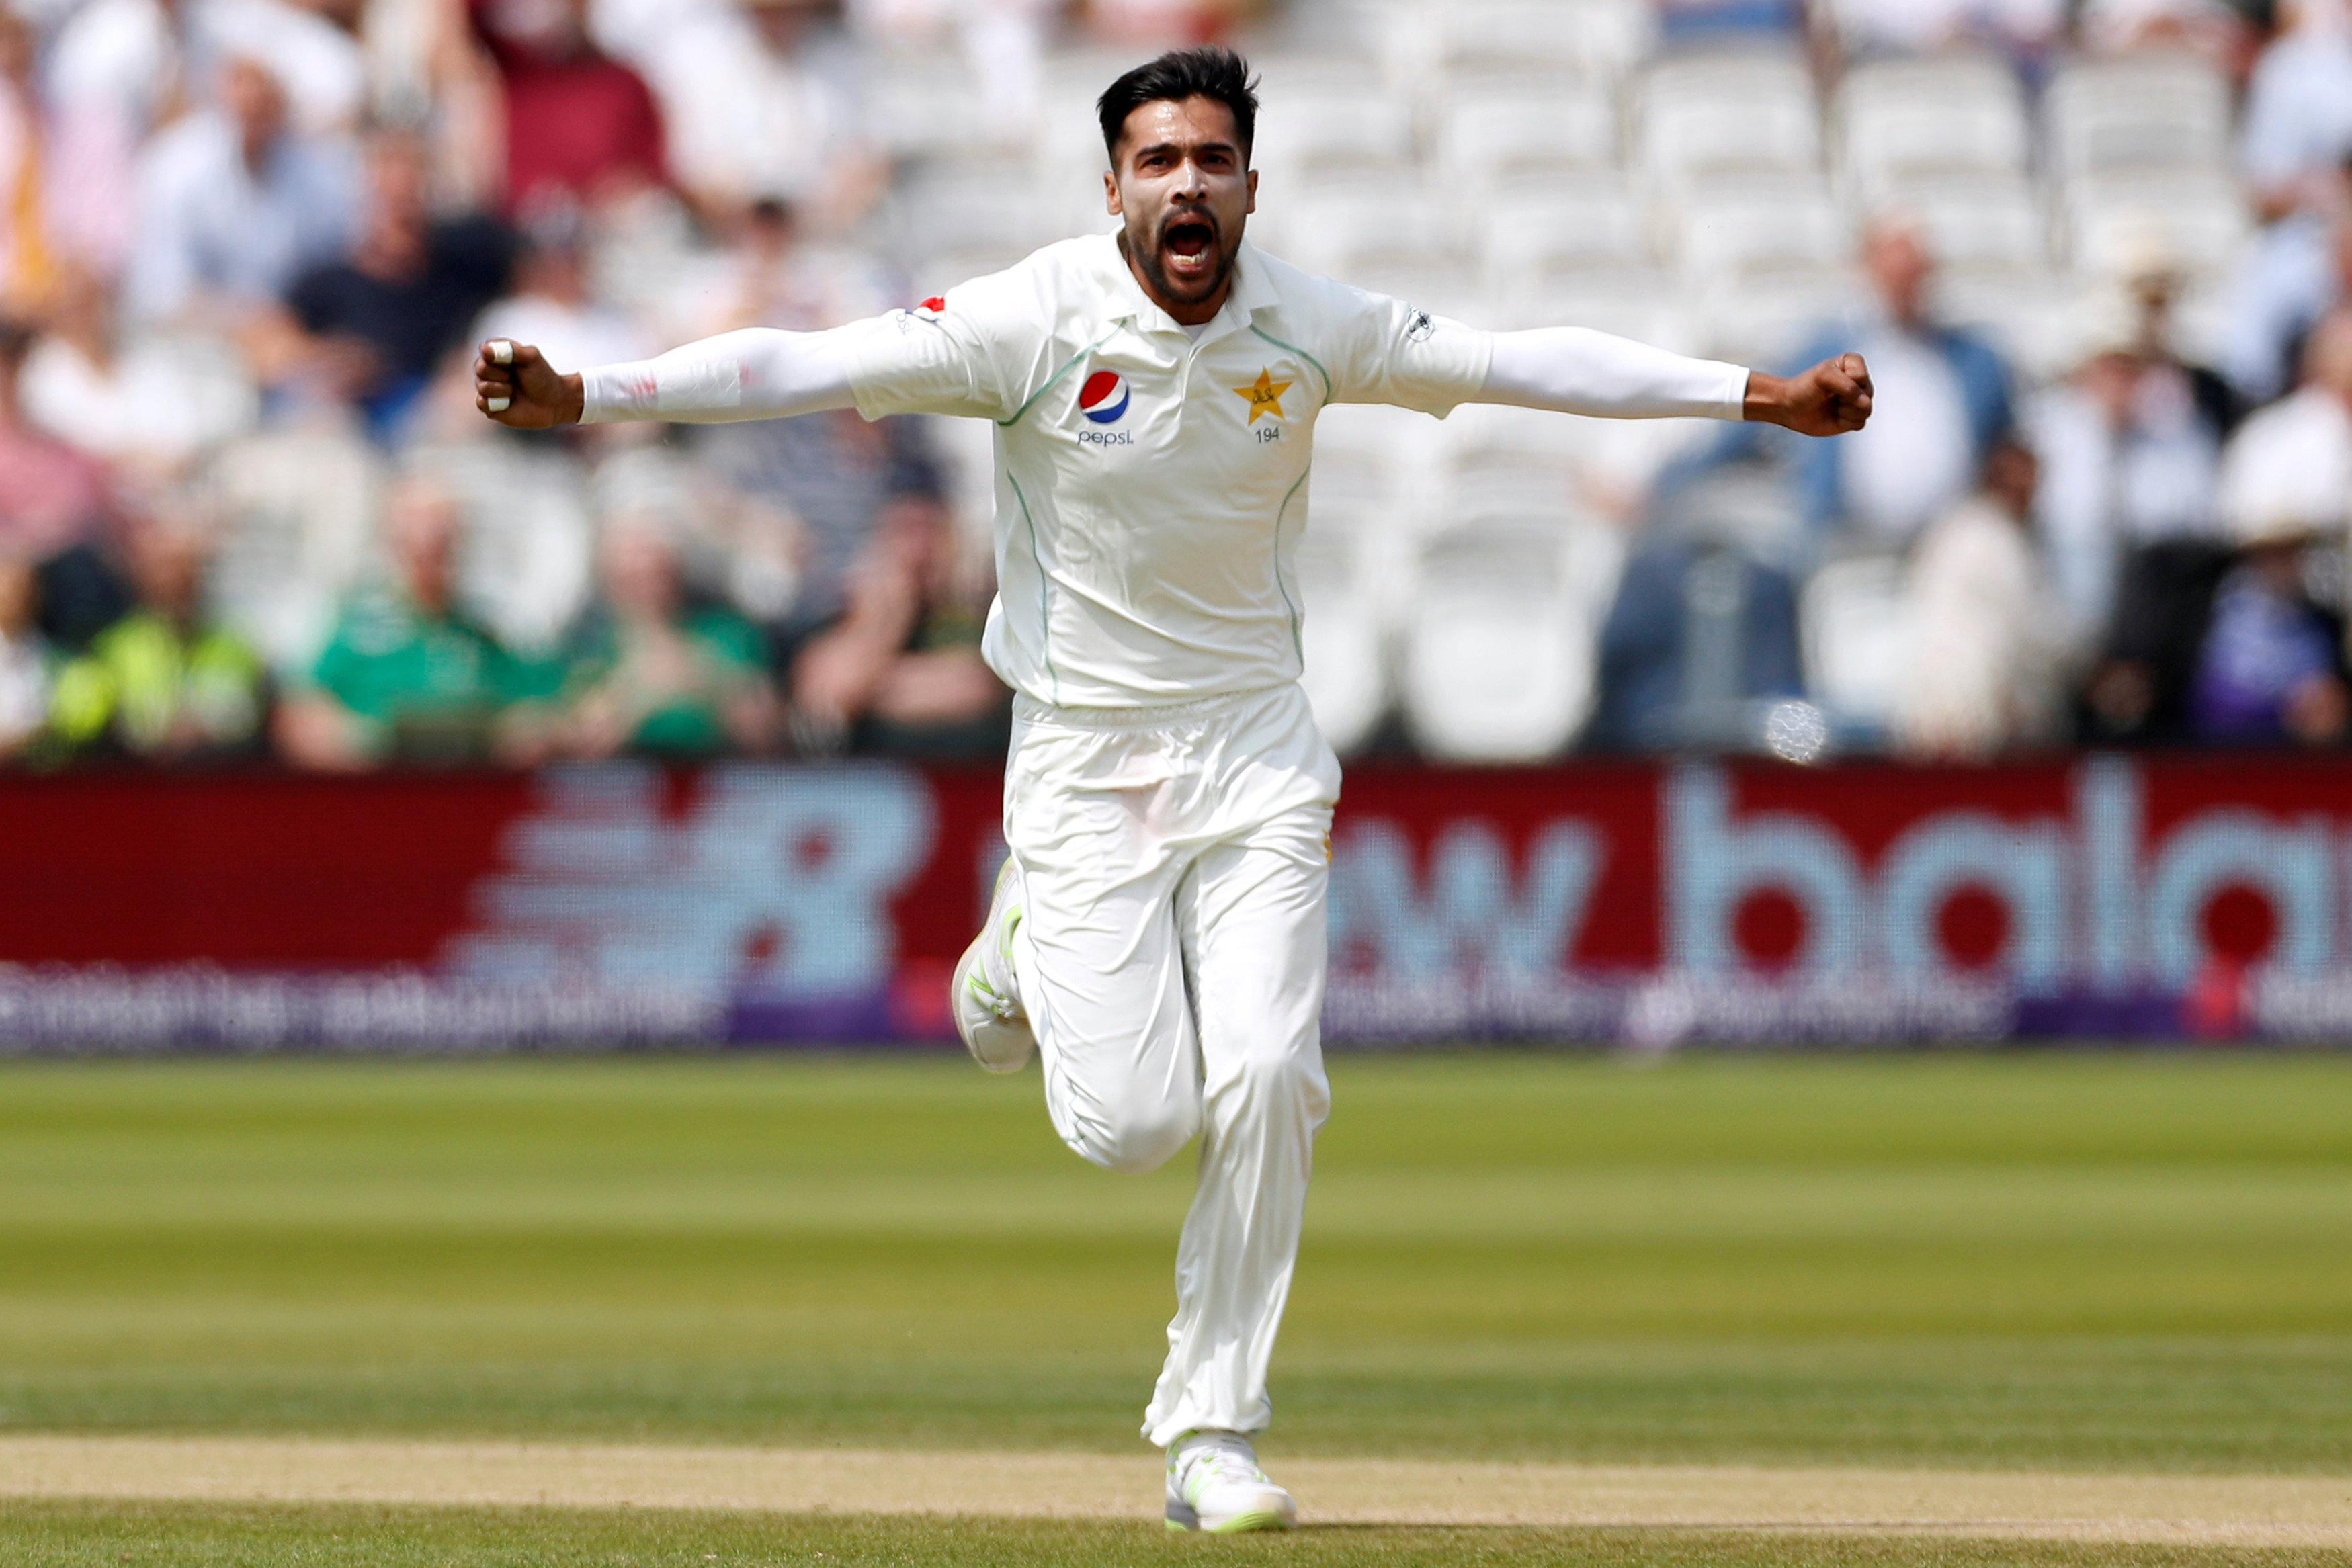 Pakistan dominated in the First Test as England failed to turn up